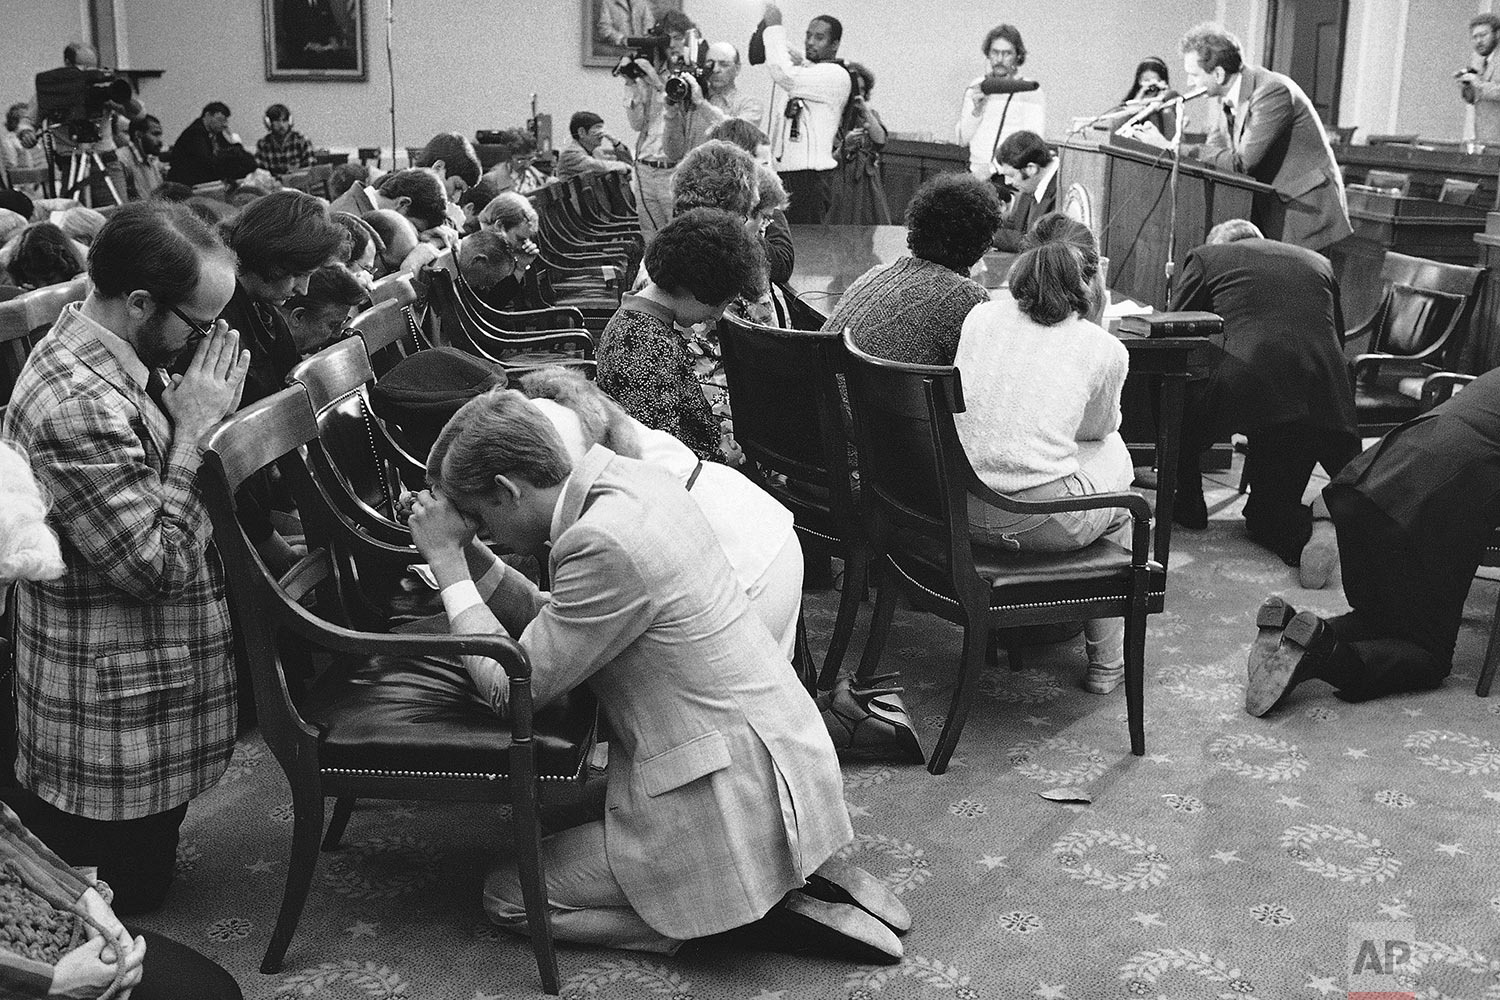 """In this Sunday, Oct. 14, 1979 file photo, a group calling themselves the """"Ad-Hoc Committee for the National Day of Prayer on Homosexuality"""" are led in prayer by Paul Cates at a gathering on Capitol Hill in Washington. The group stated they intended to pray for the repentance of homosexuals. The gathering coincided with a Washington rally by gay organizations. (AP Photo/Thumma)"""